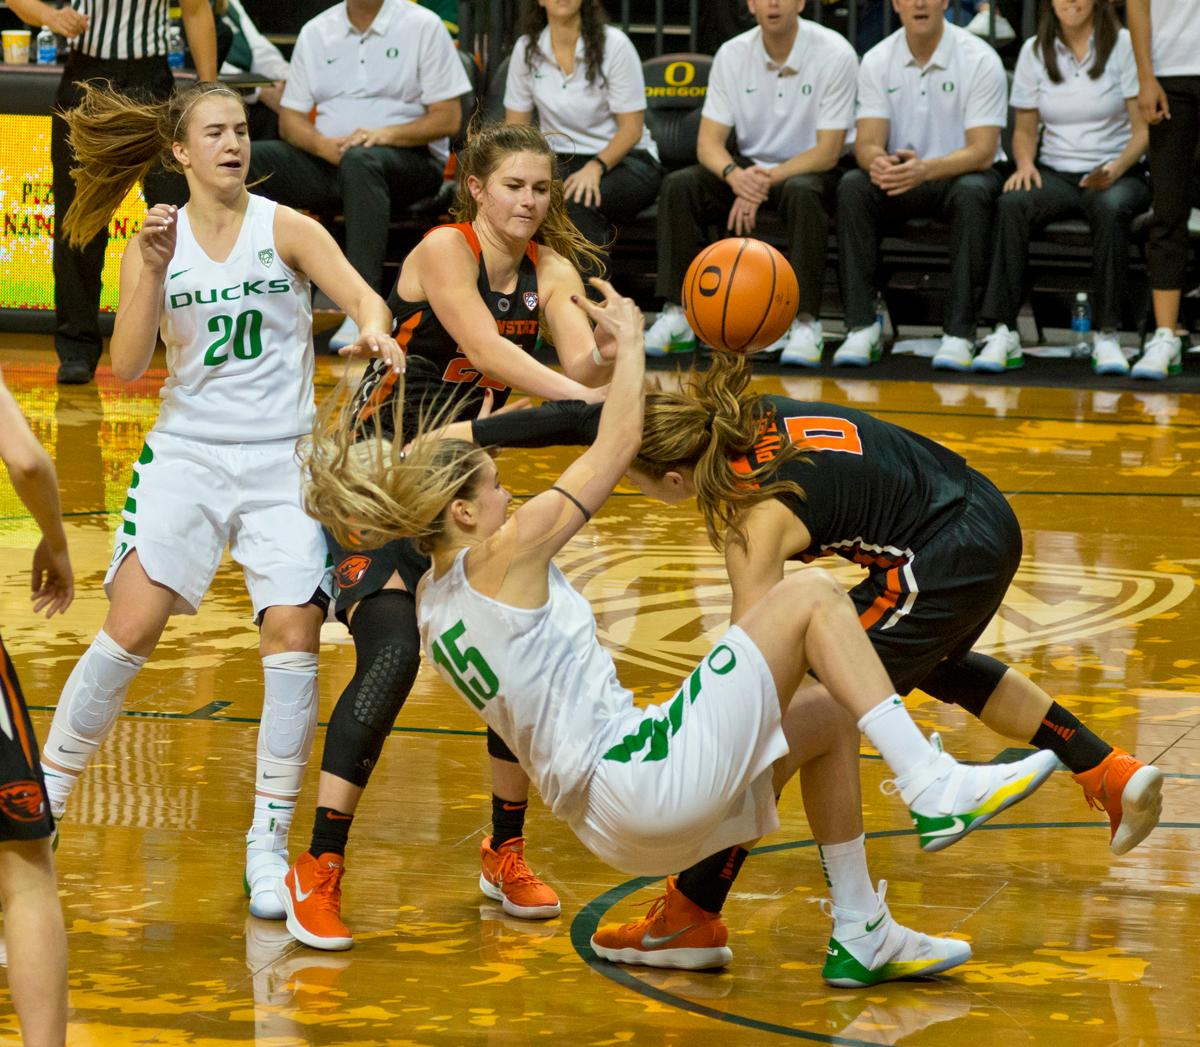 Oregon Ducks Anneli Maley (#15) falls to the floor after colliding with Oregon State Beavers Mikayla Pivec (#0). Maley drew both a personal foul and a technical foul on the play. The Oregon Ducks defeated the Oregon State Beavers 75-63 on Sunday afternoon in front of a crowd of 7,249 at Matthew Knight Arena. The Ducks and Beavers split the two game Civil War with the Beavers defeating the Ducks on Friday night in Corvallis. The Ducks had four players in double digits: Satou Sabally with 21 points, Maite Cazorla with 16, Sabrina Ionescu with 15, and Mallory McGwire with 14. The Ducks shot 48.4% from the floor compared to the Beavers 37.3%. The Ducks are now 7-1 in conference play. Photo by Dan Morrison, Oregon News Lab